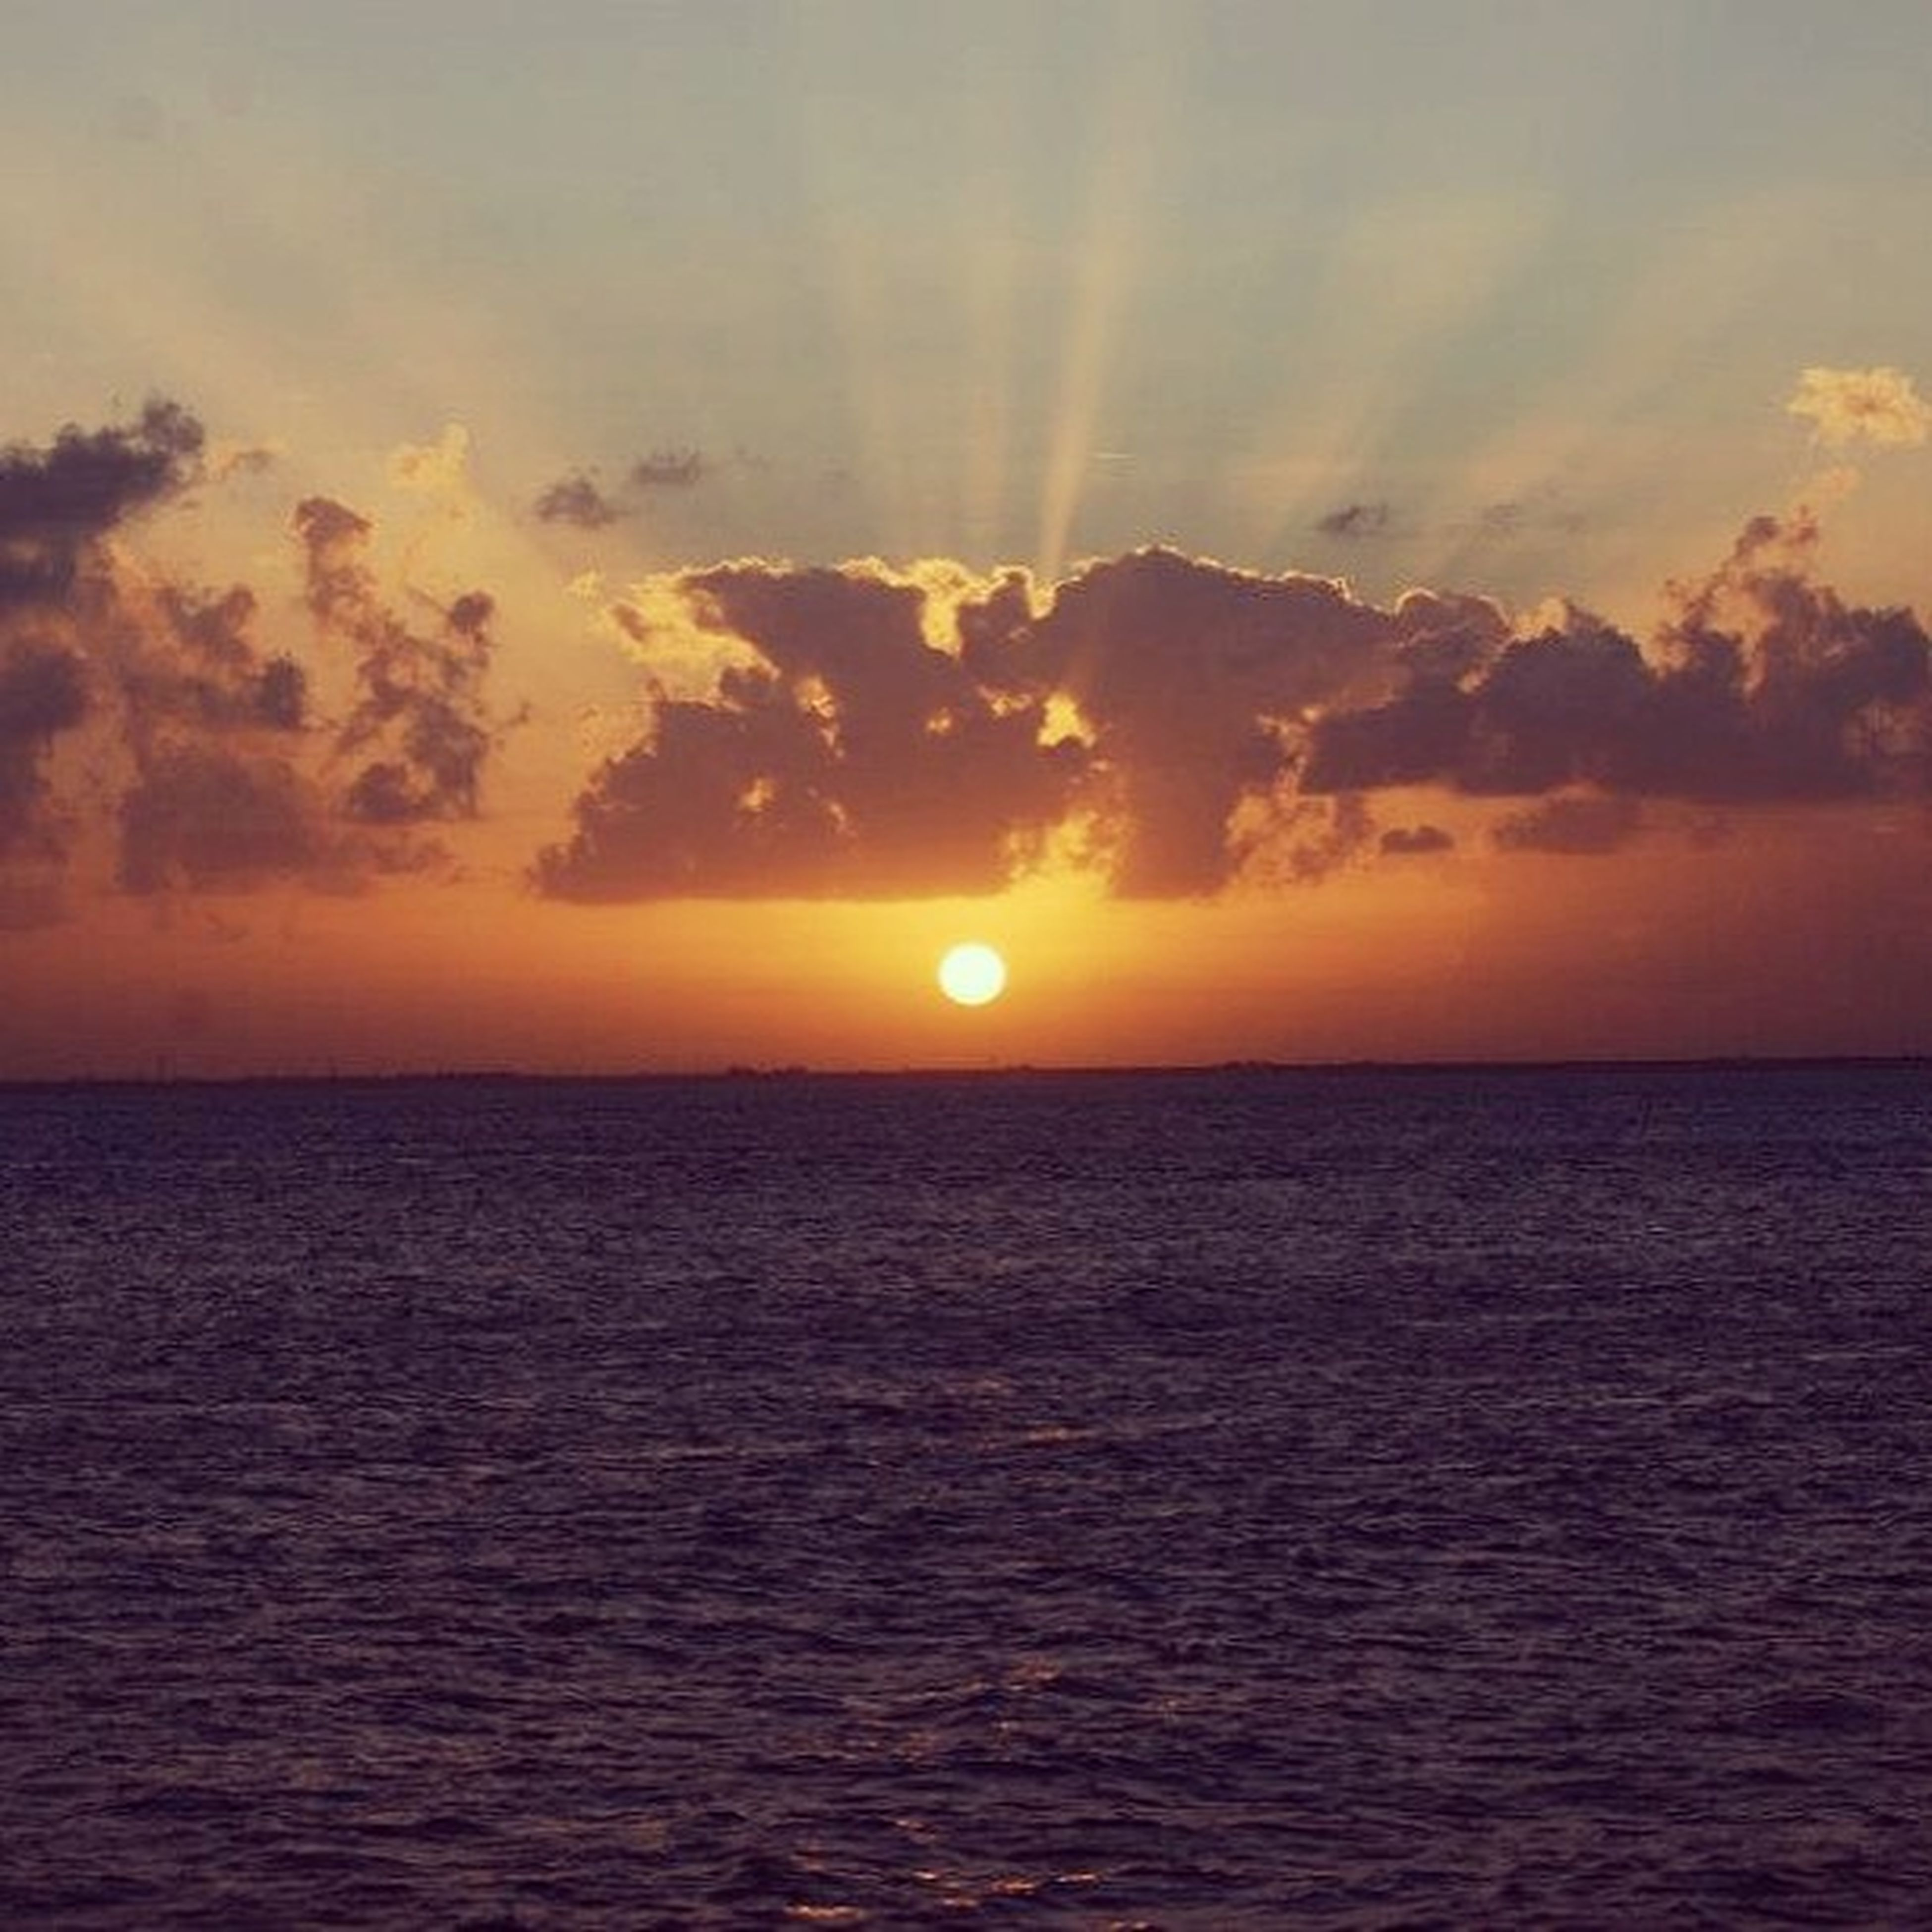 sunset, sea, water, scenics, horizon over water, sun, tranquil scene, beauty in nature, sky, tranquility, orange color, waterfront, idyllic, nature, rippled, cloud - sky, sunlight, seascape, reflection, cloud